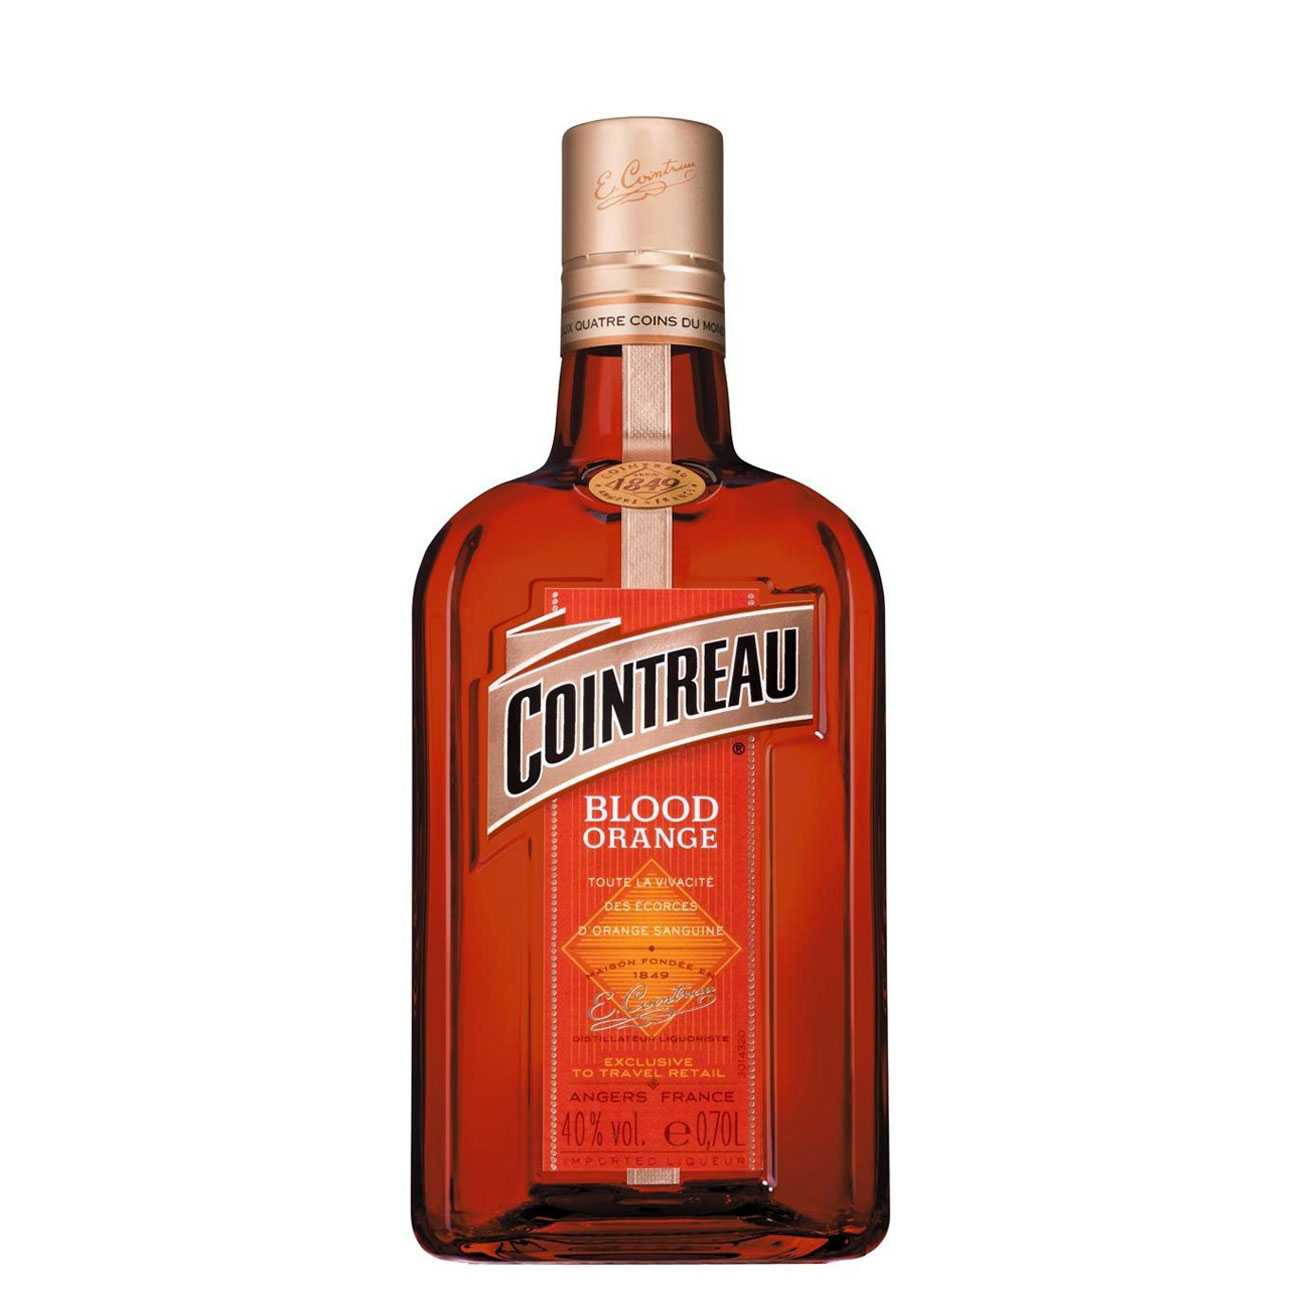 Lichior, BLOOD ORANGE 700 ML, Cointreau